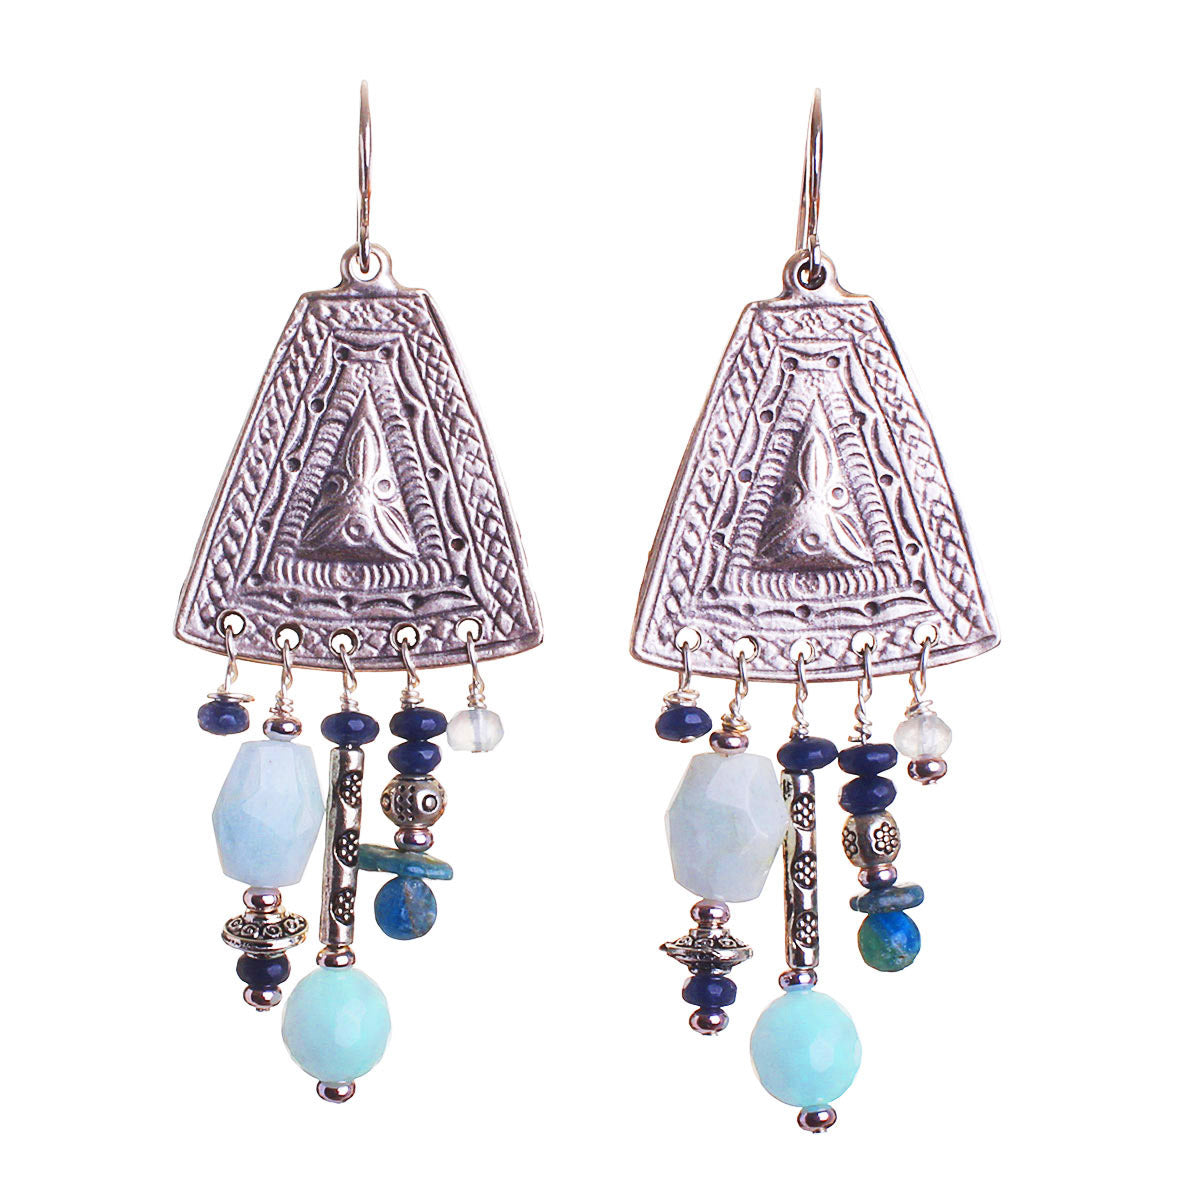 N°535 The Santa Fe Blue Bird Statement Earrings